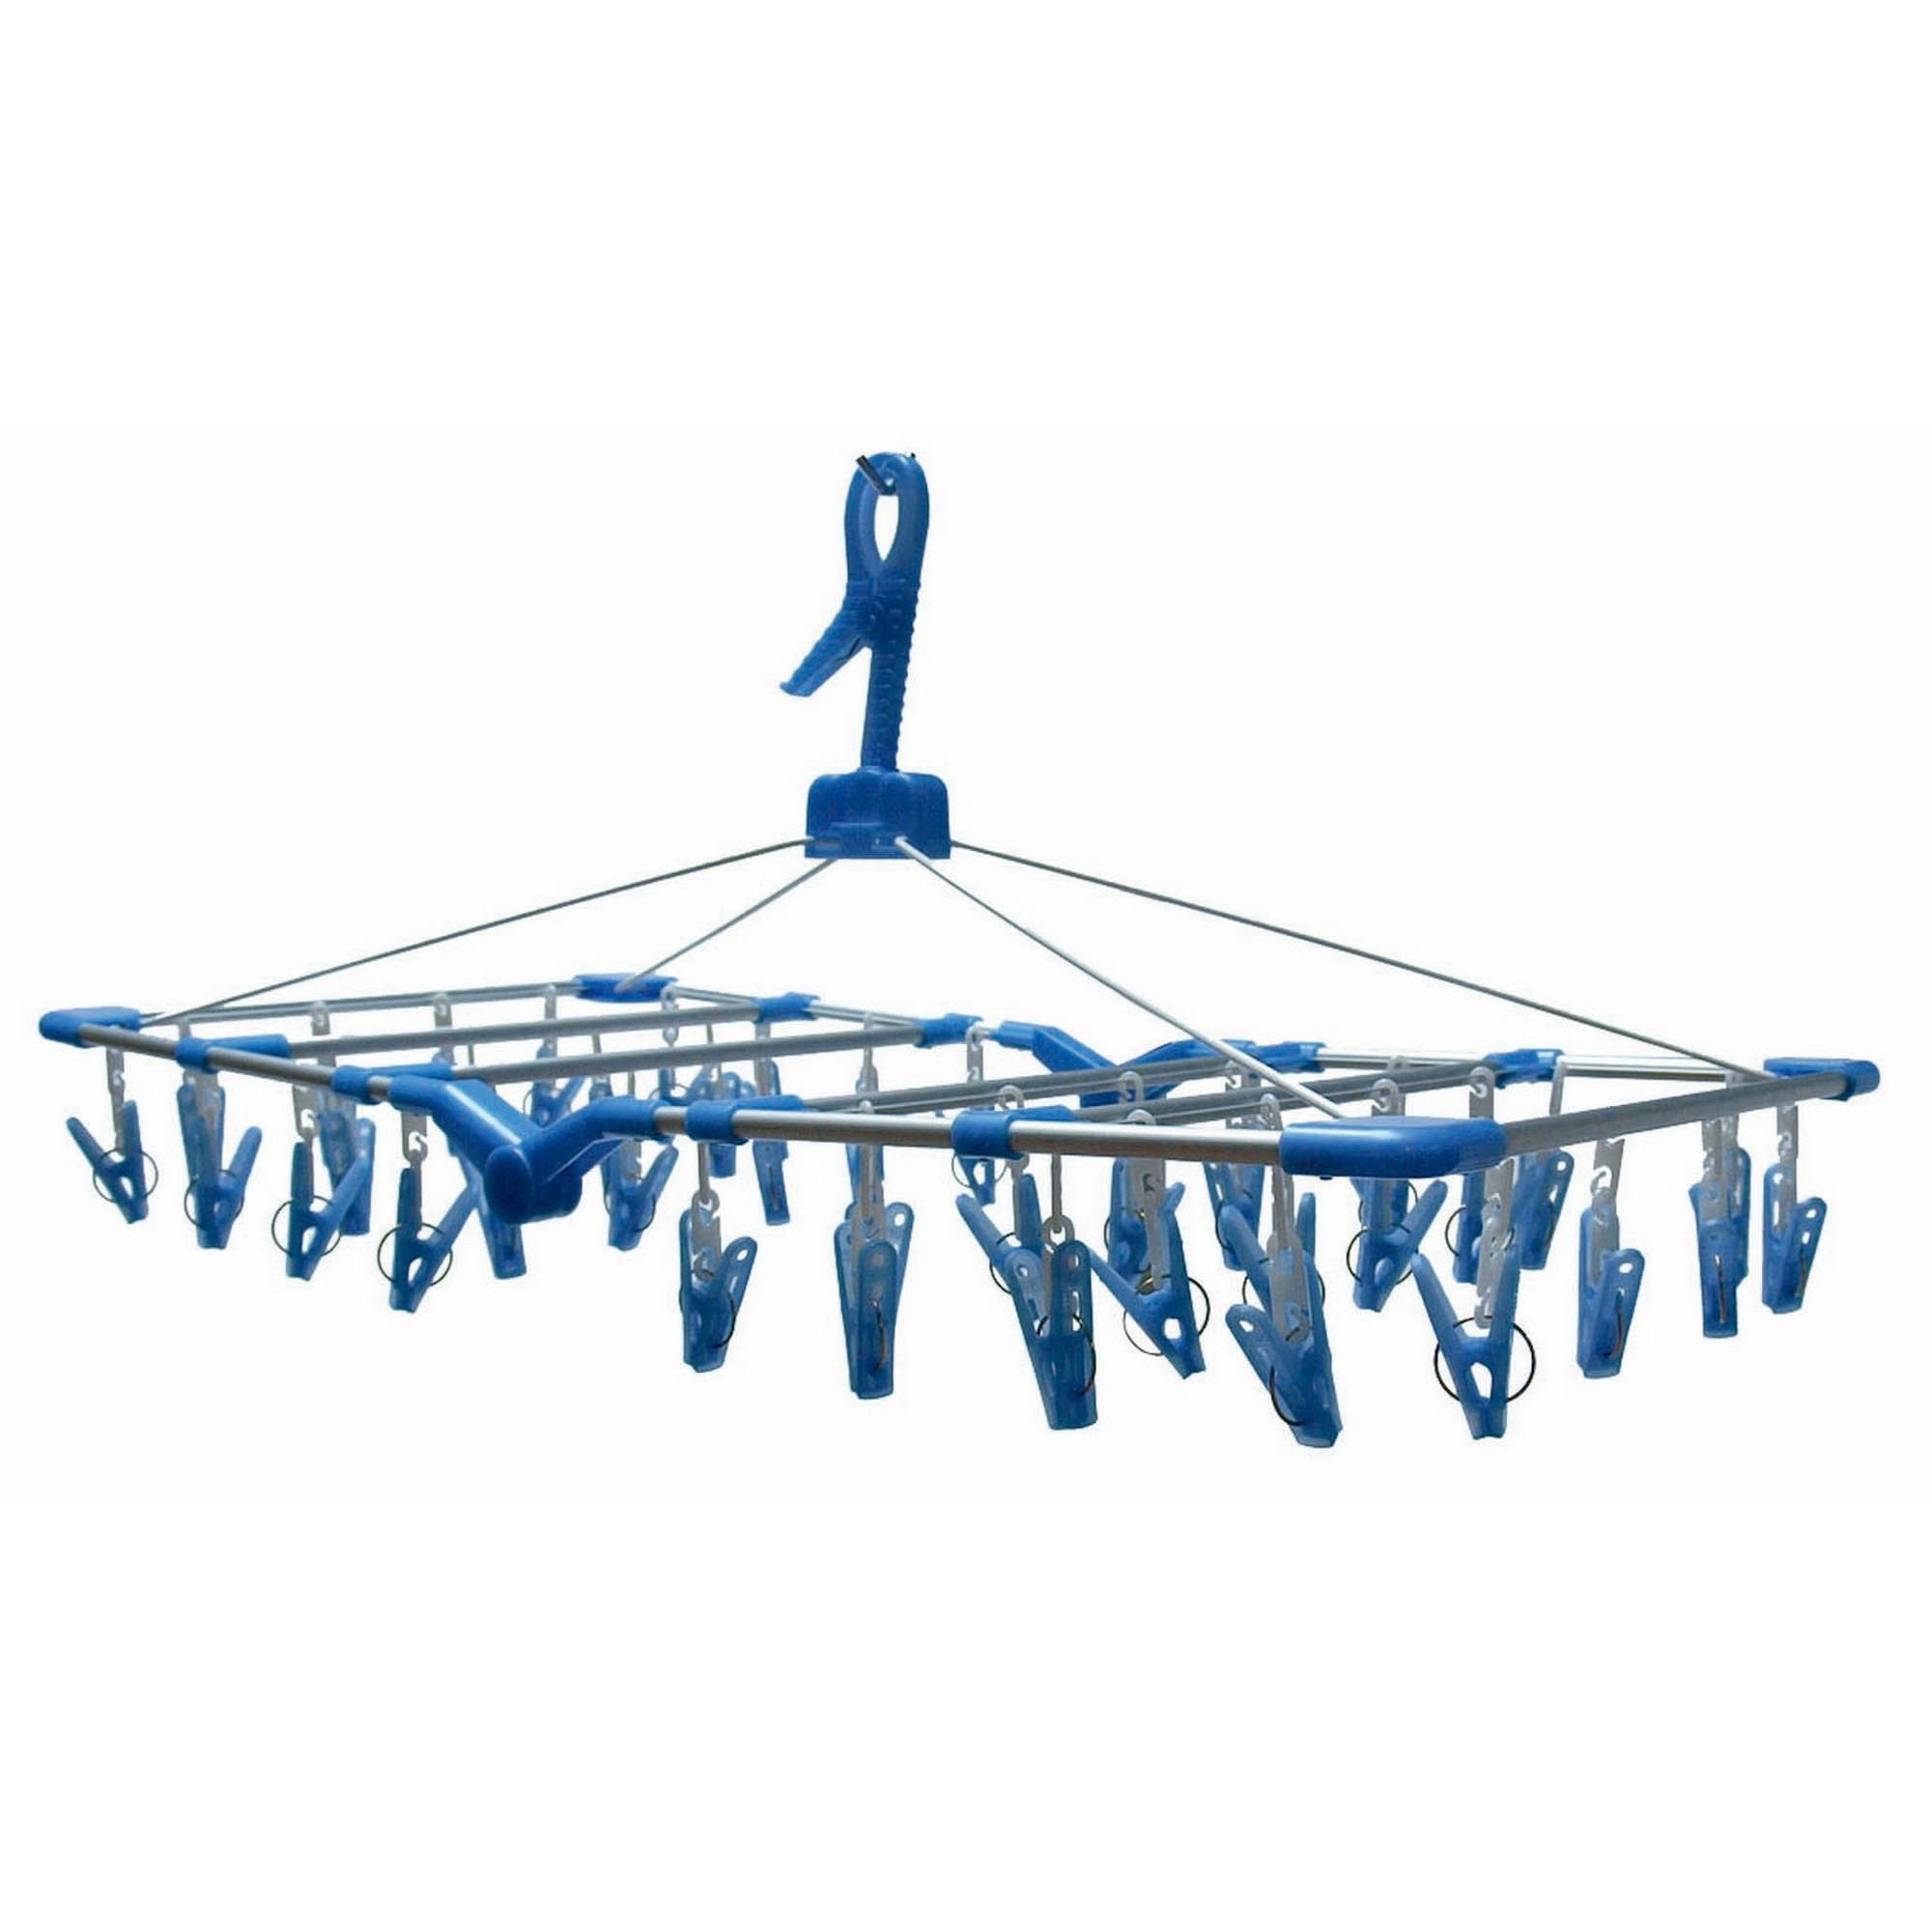 Camp 4 Olli Clothes Dryer (One Size) (Blue/Gray)